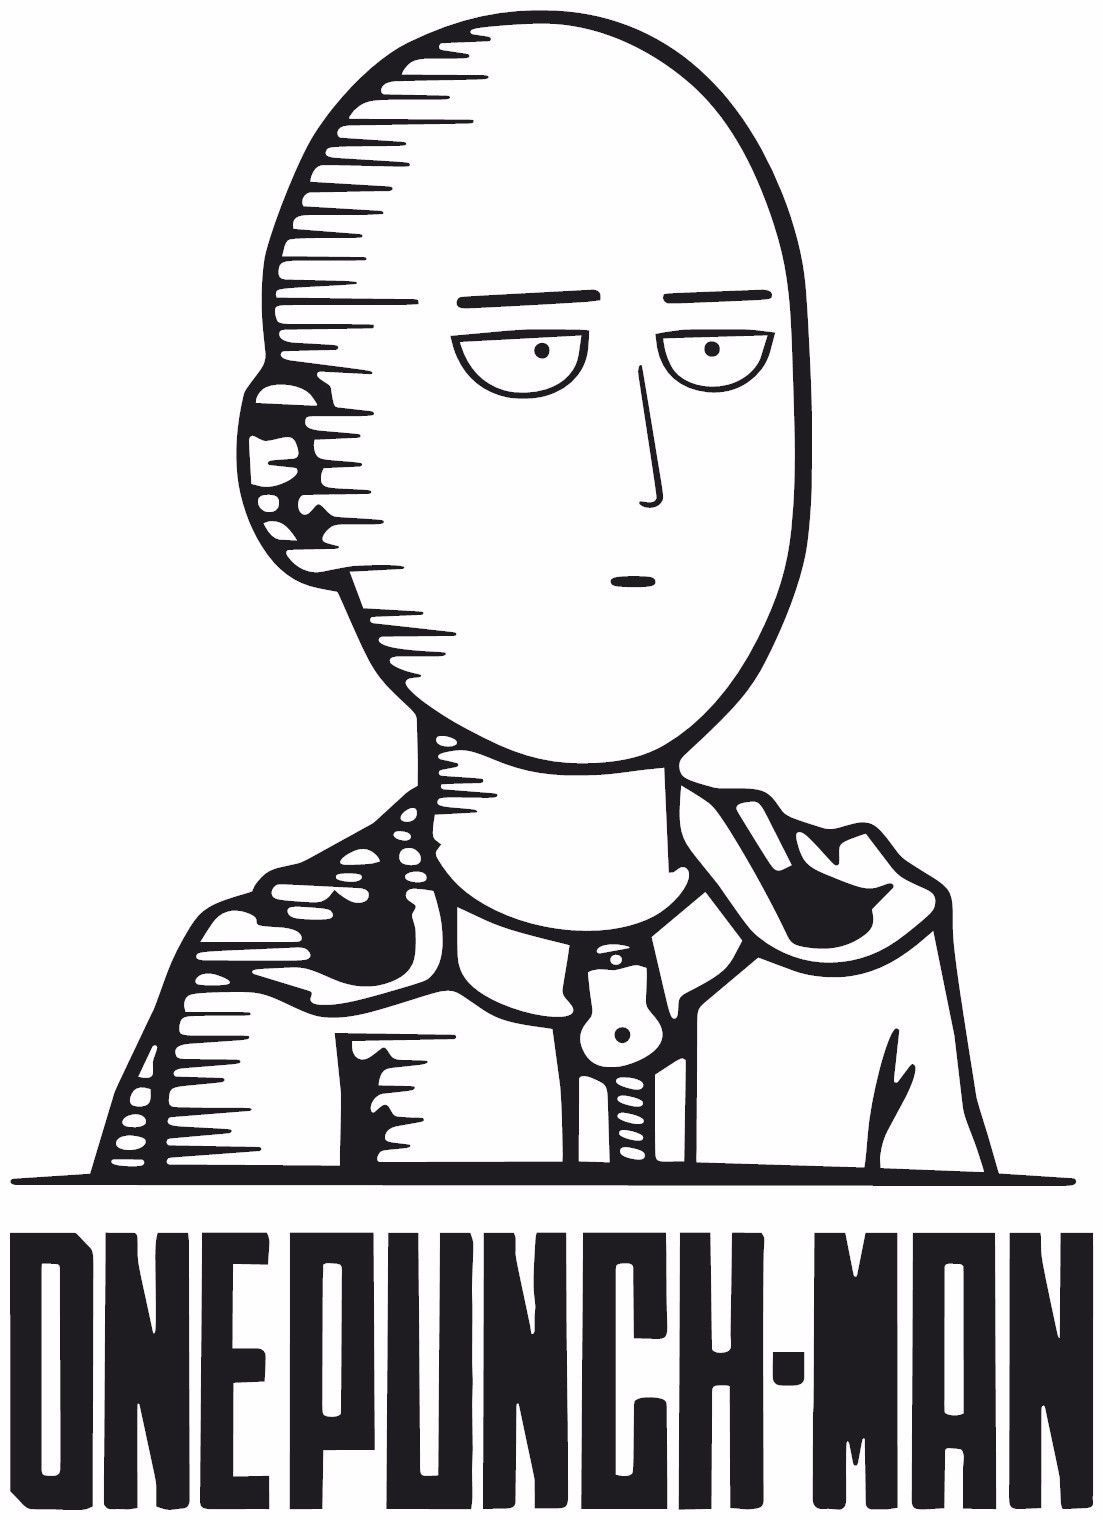 One Punch Man Saitama Anime Decal Sticker For Car Truck Laptop Ebay One Punch Man Anime One Punch Man One Punch Man Manga